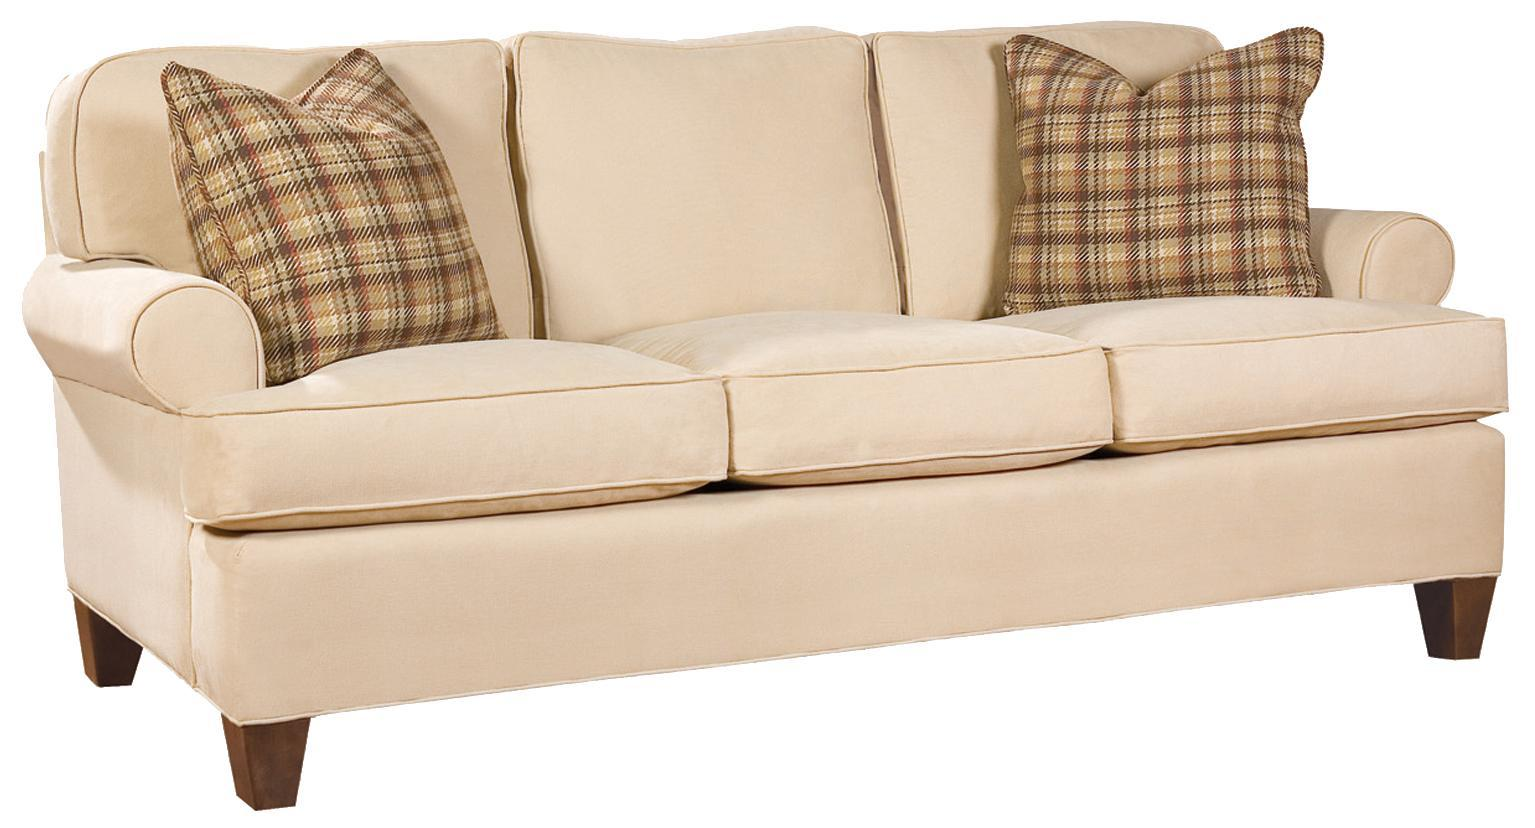 Huntington House 2041 Sofa - Item Number: 2041-10